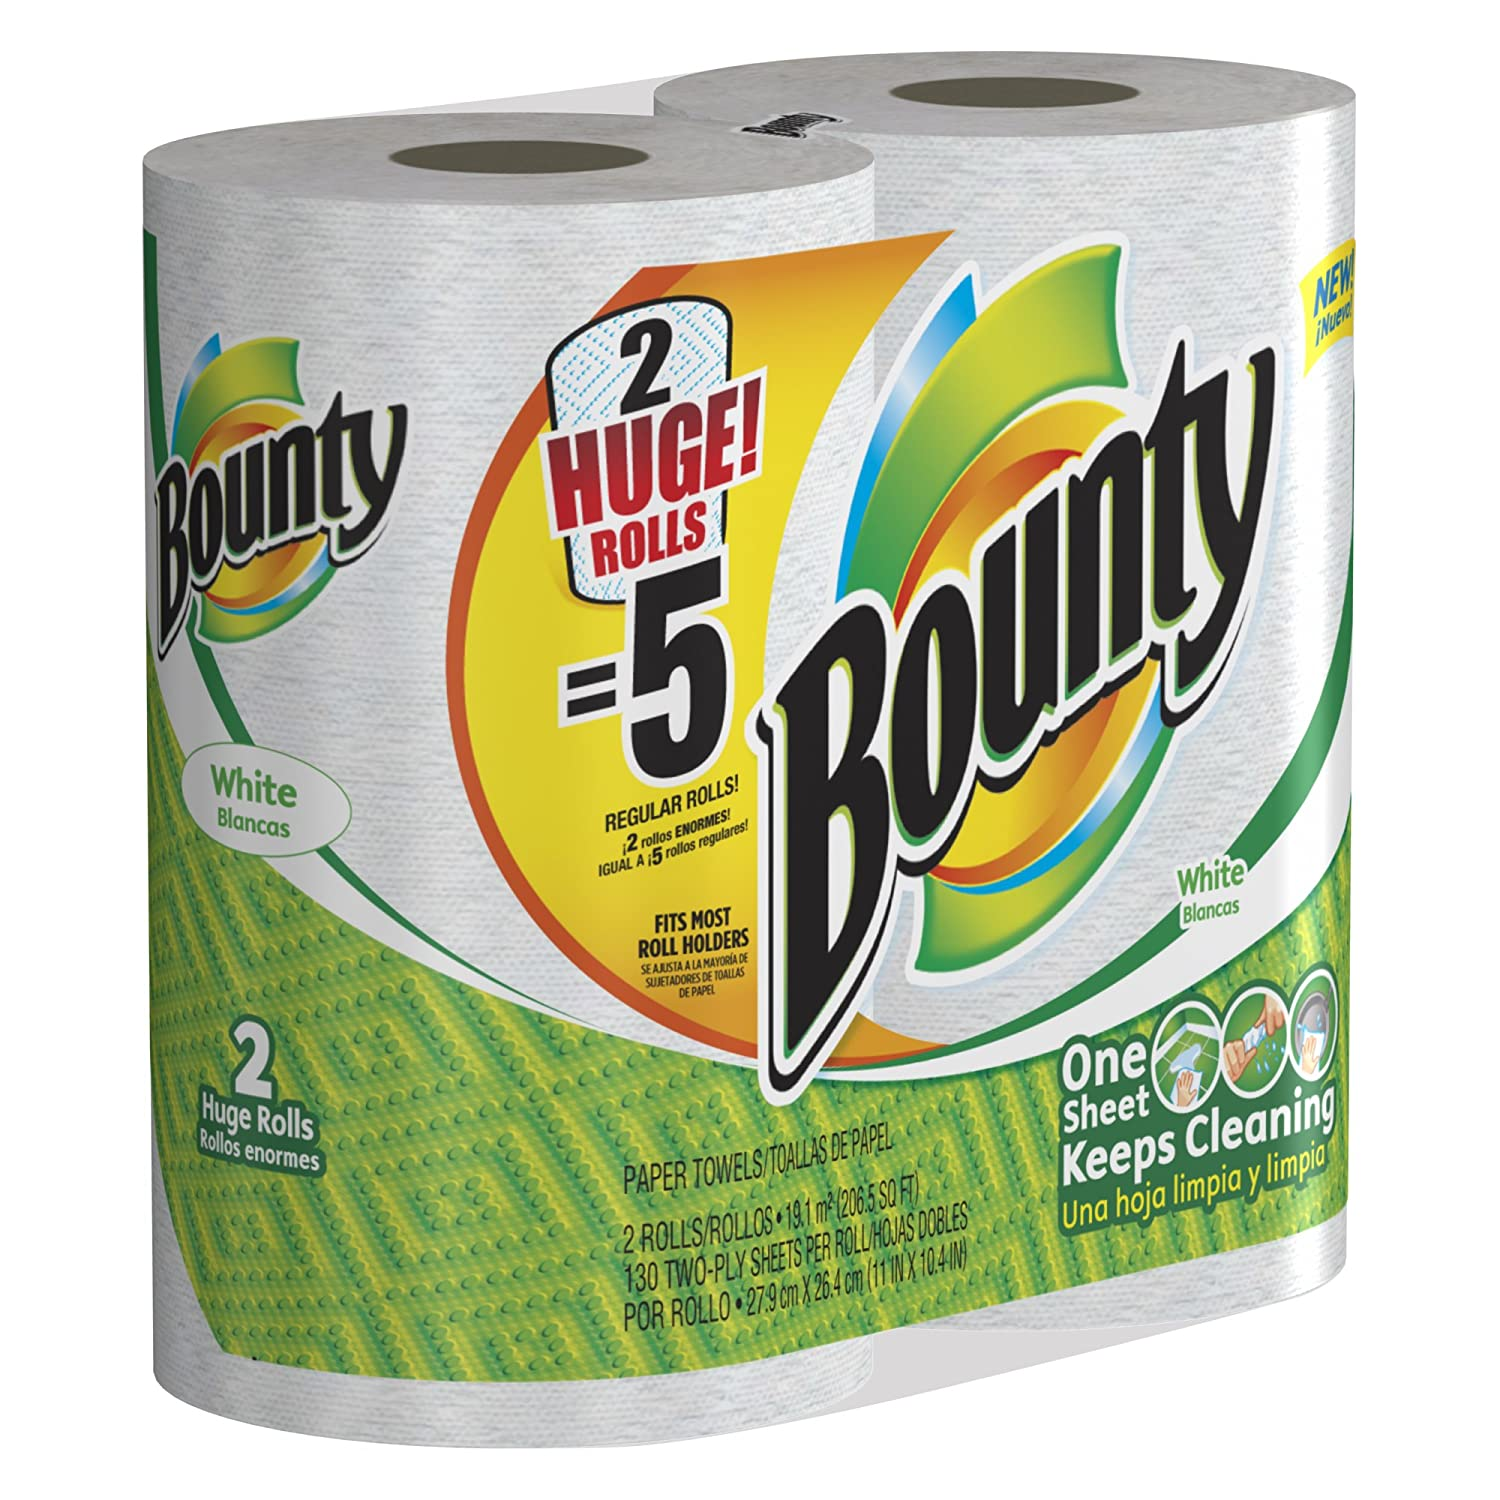 Amazon.com: Bounty Huge Roll, White, 2 Rolls (Pack of 6): Health & Personal Care